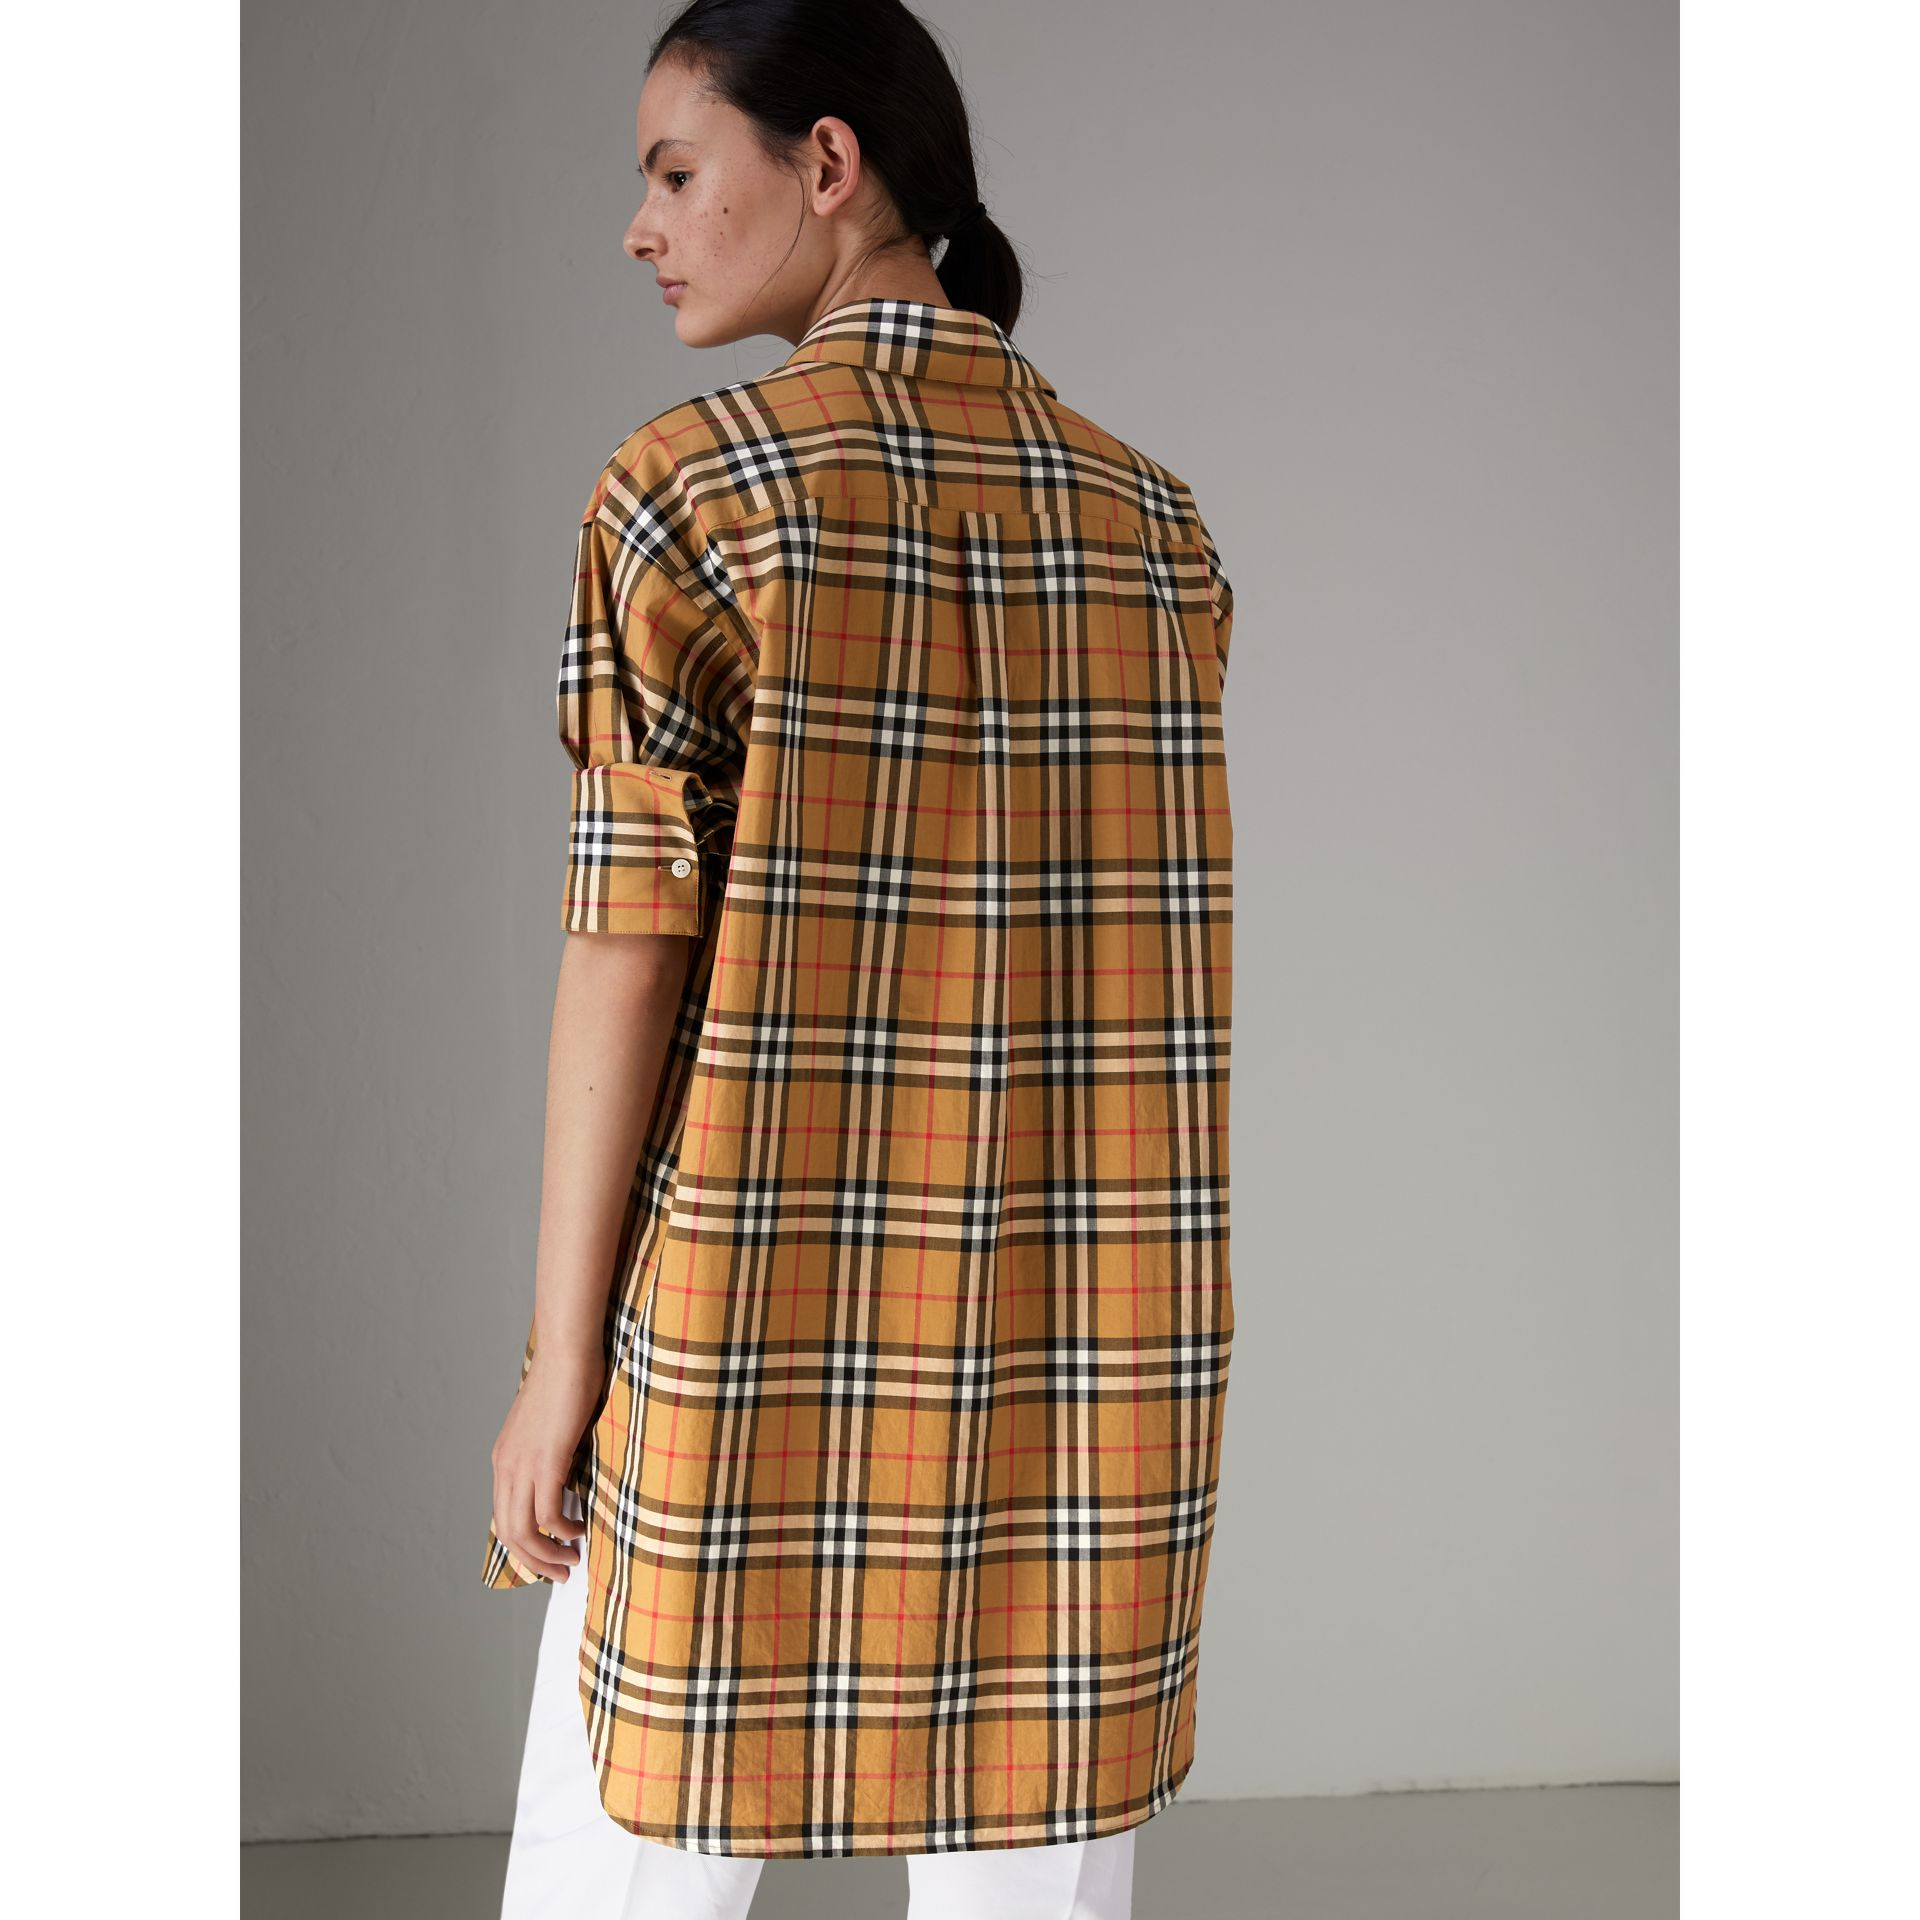 Chemise en coton à motif Vintage check (Jaune Antique) - Femme | Burberry - photo de la galerie 2